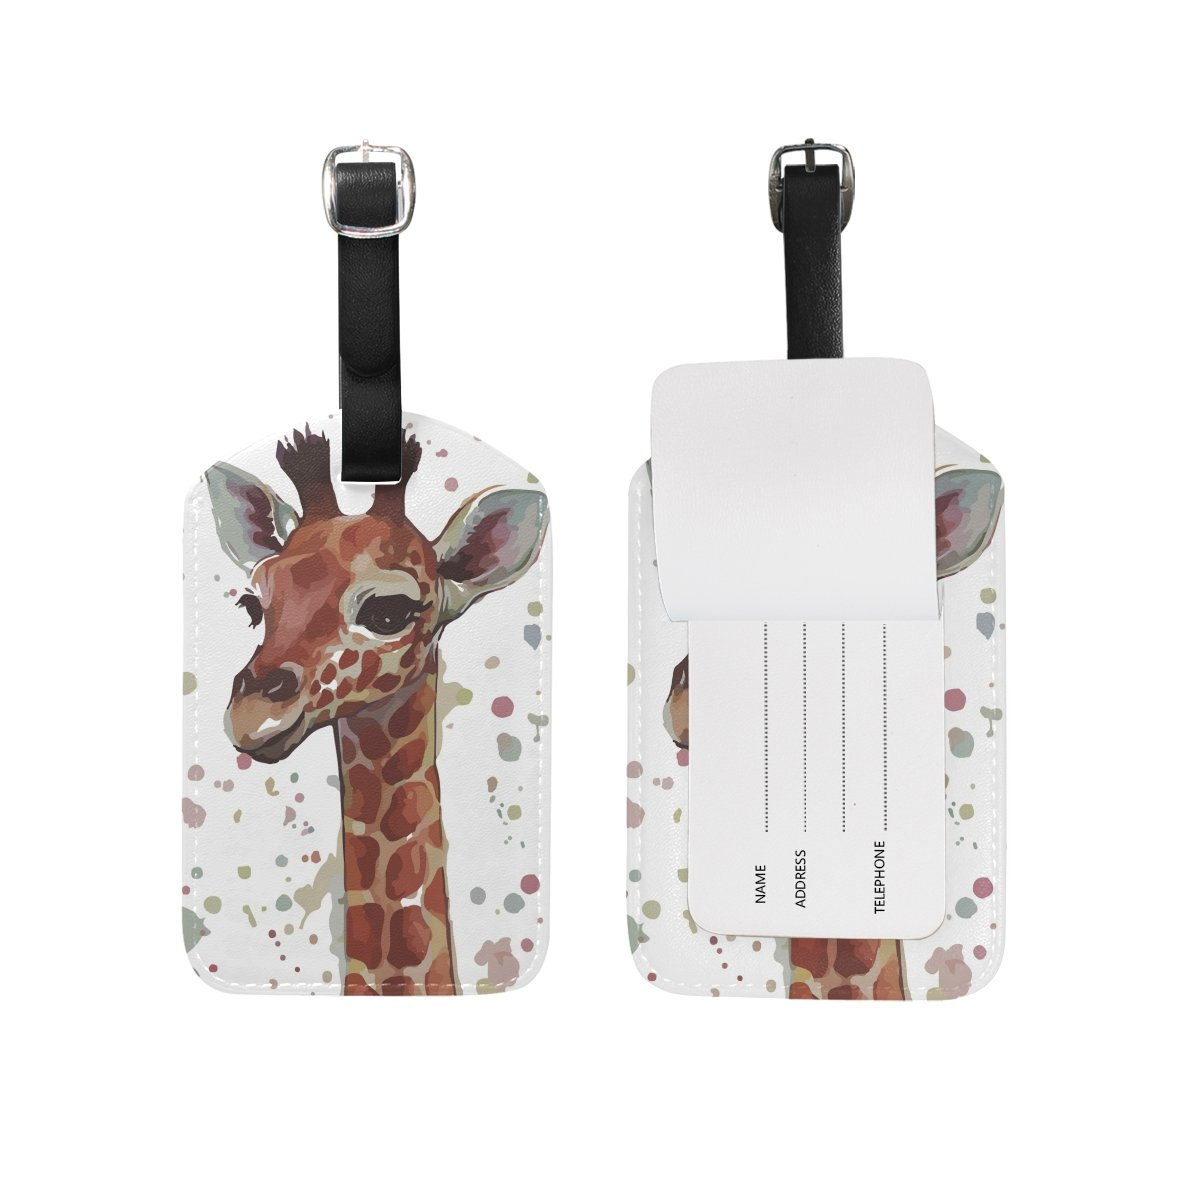 Art Giraffe Leather Travel Tour Luggage Handbag Personalized Tags Card Labels (2pcs)